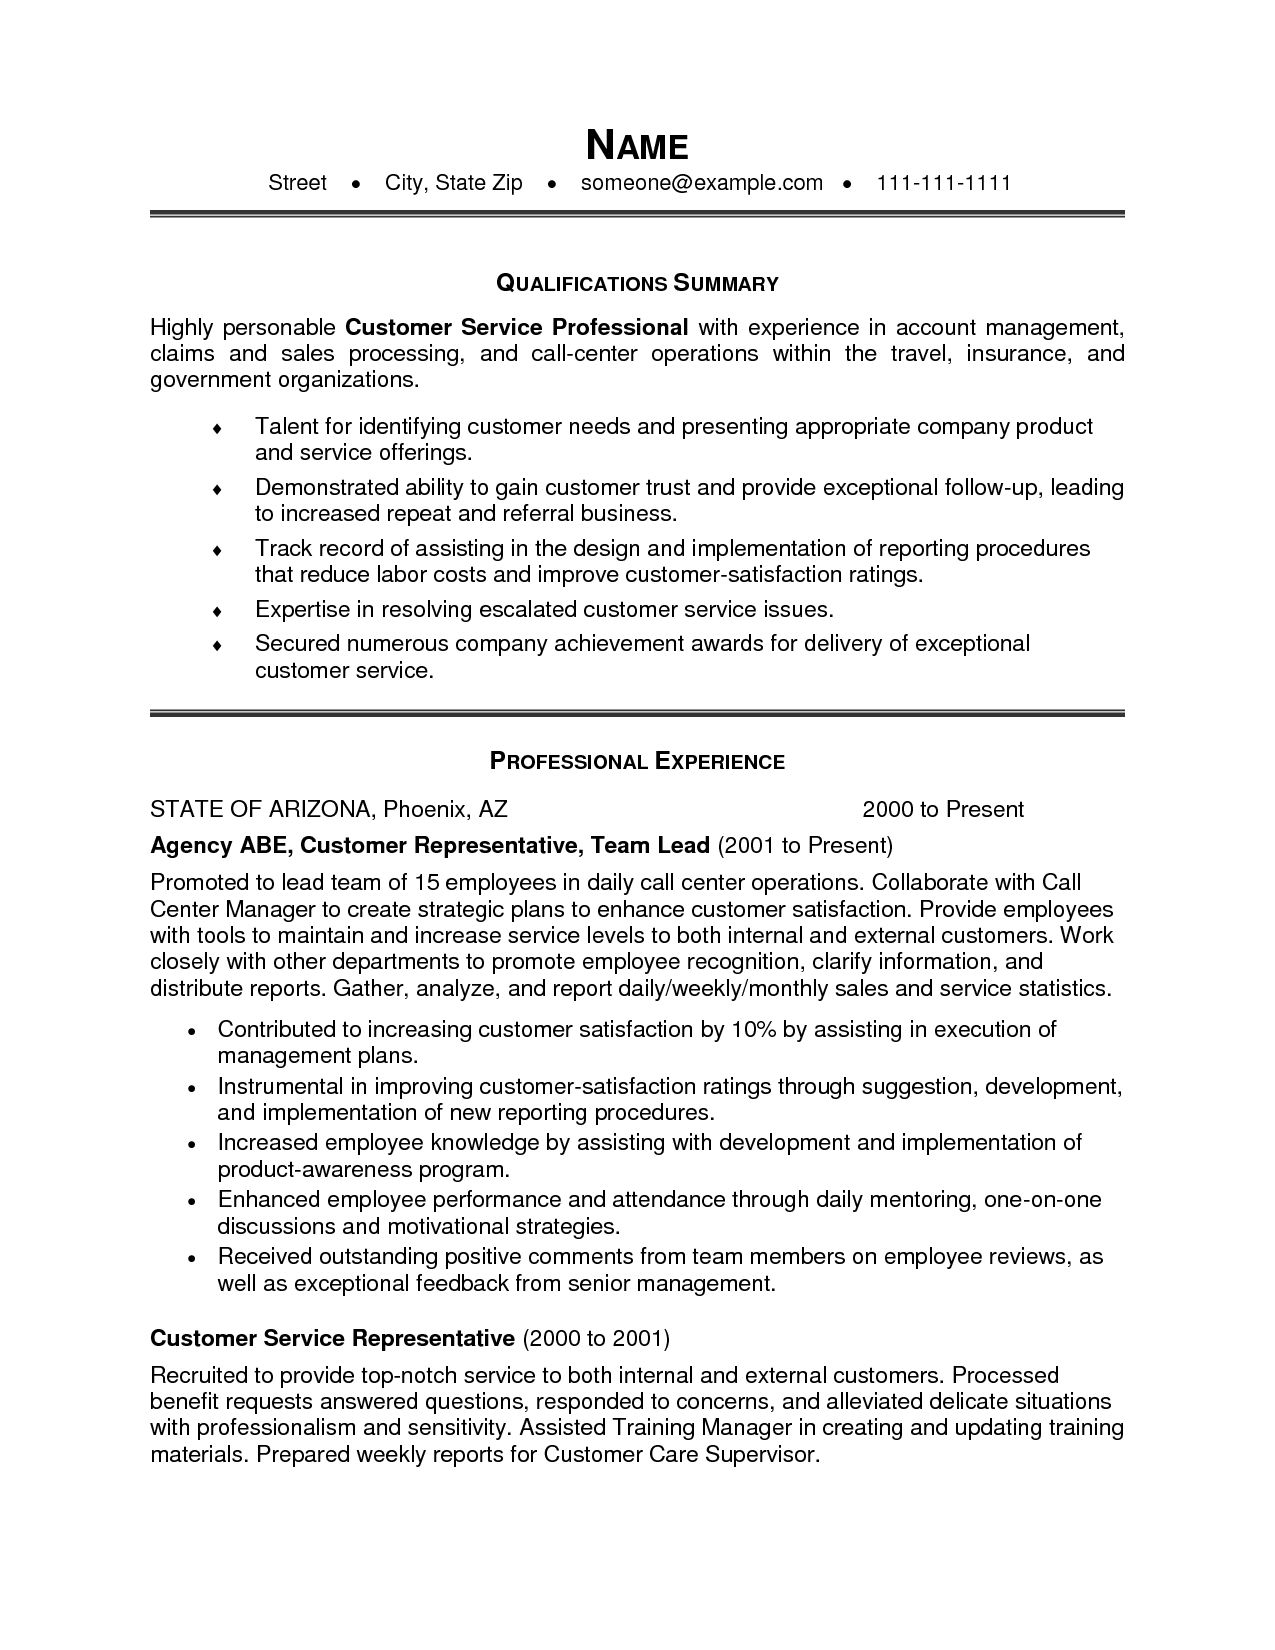 customer service resume objective or summary examples xposure restaurant cleaner Resume Resume Examples Customer Service Objective